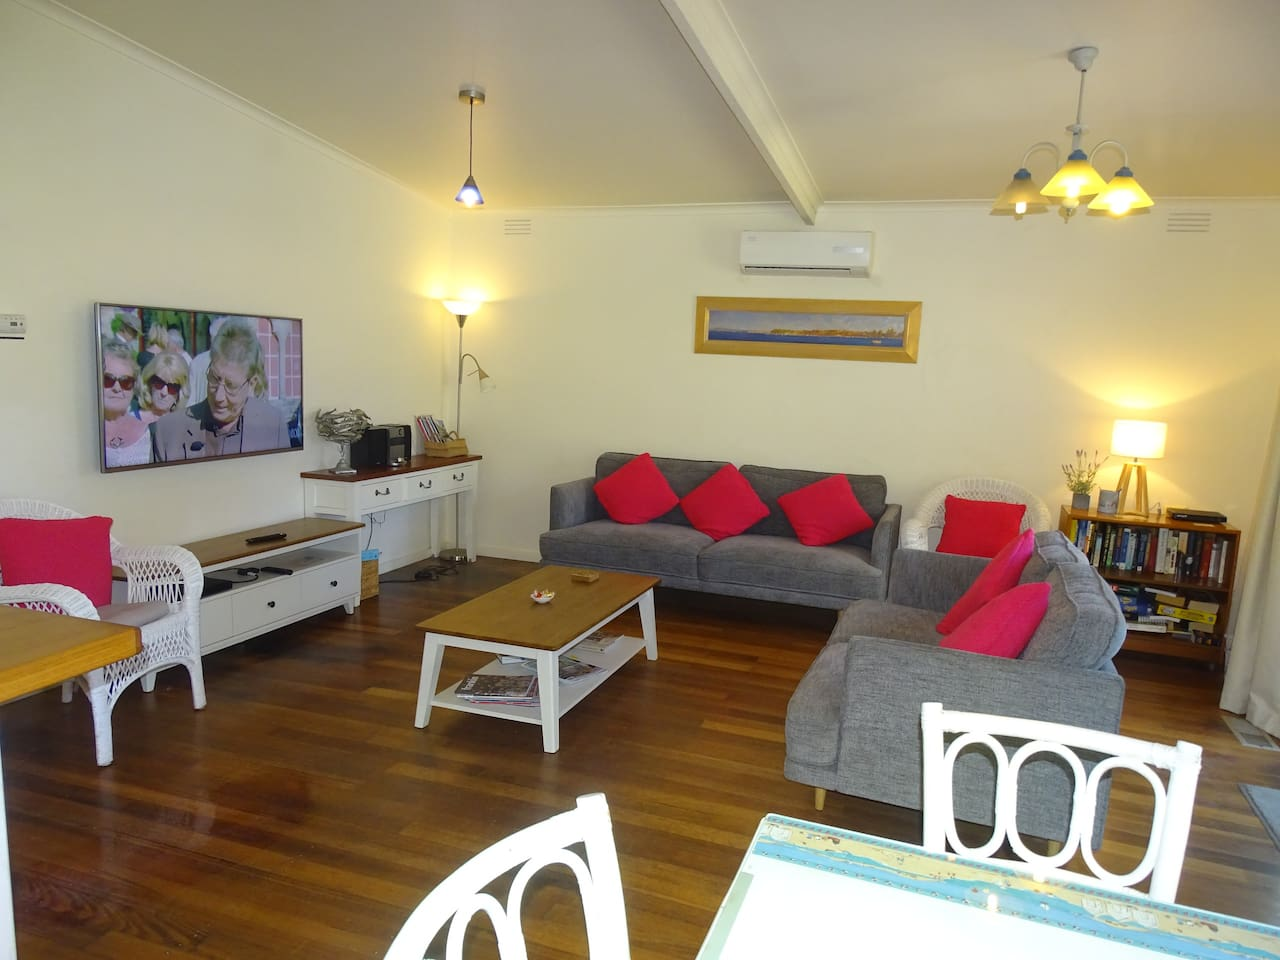 Beachwalk Family Room   Free WiFi Unlimited Usage. 55 Inch Smart TV with Netflix and YouTube. A/C Units and Under Floor Heating.